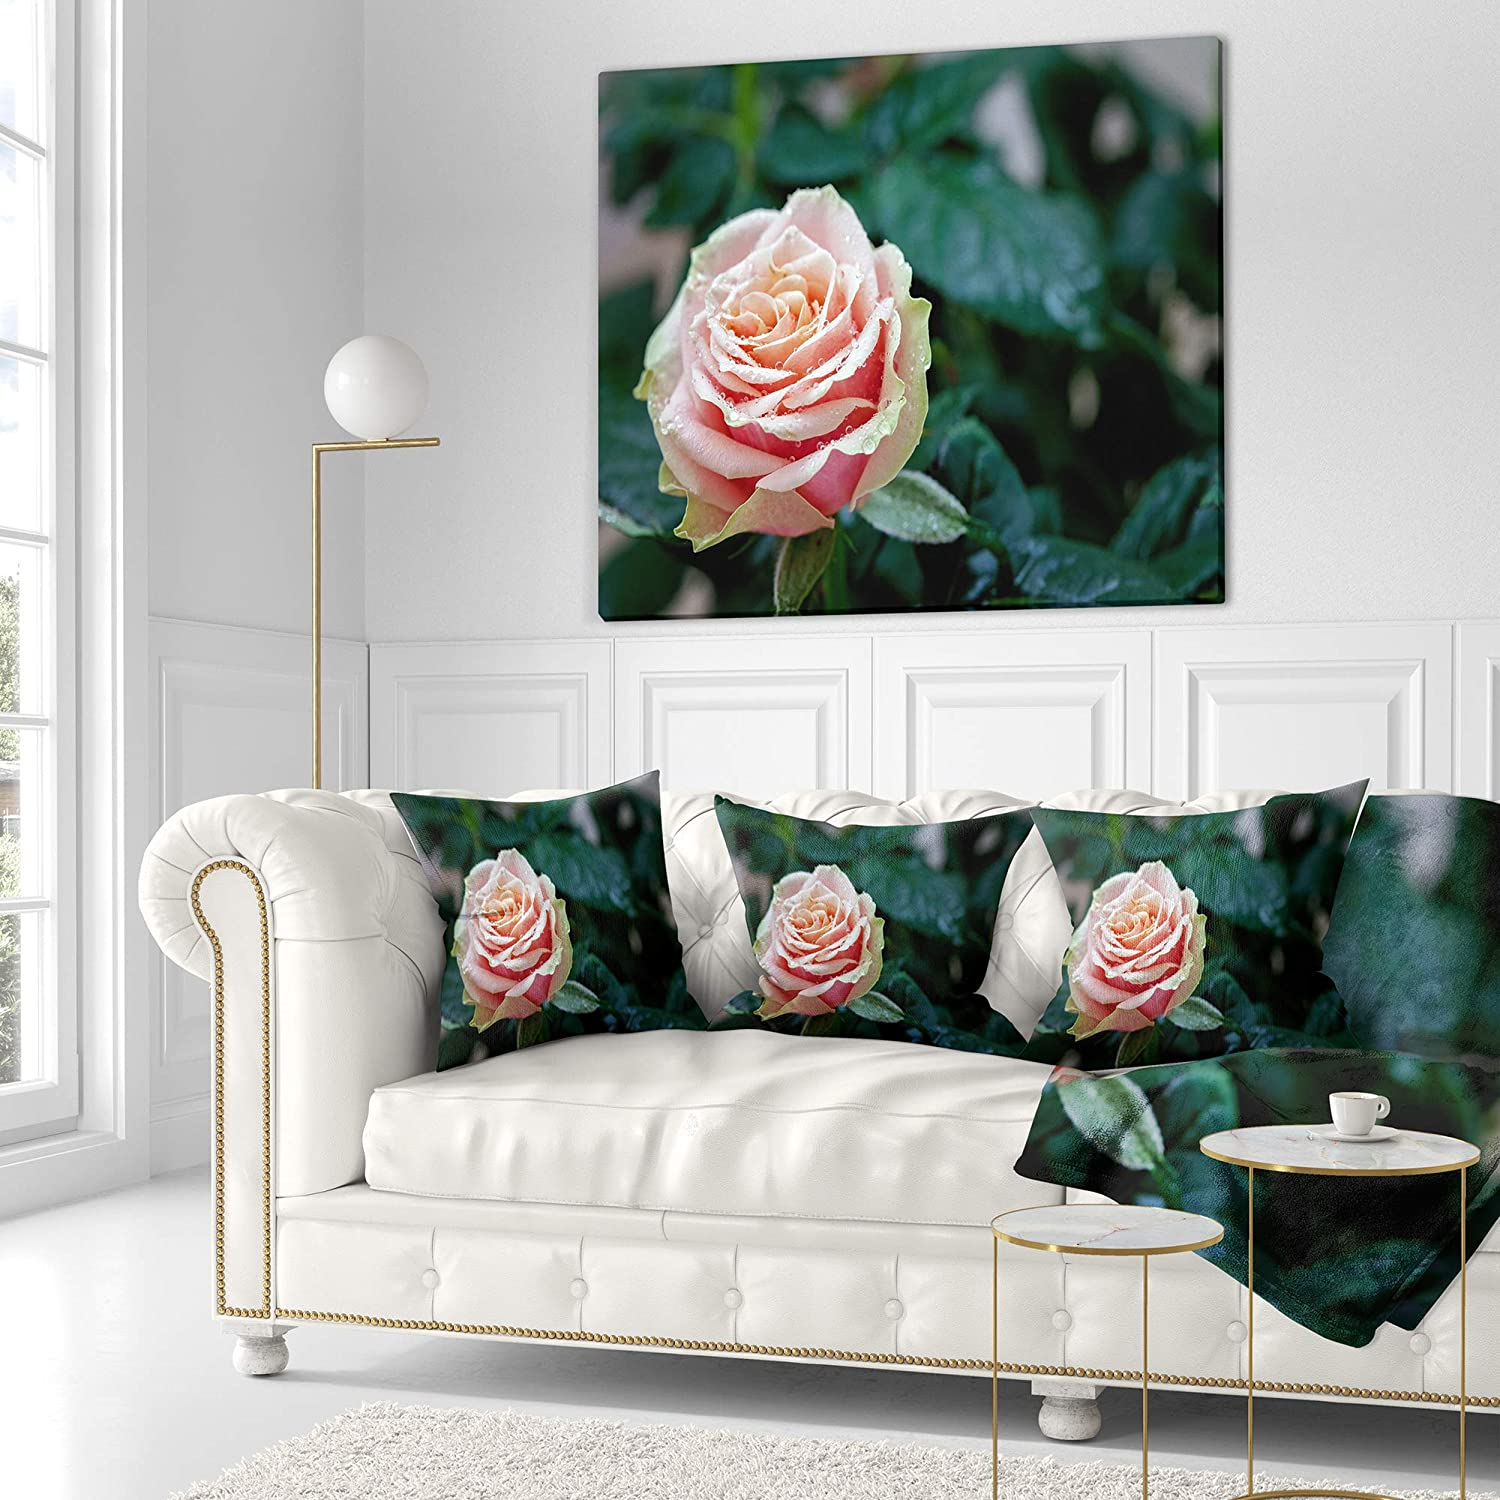 x 26 in Insert Printed On Both Side Sofa Throw Pillow 26 in in Designart CU12666-26-26 Red and Orange Rose Flower Close Up Floral Cushion Cover for Living Room